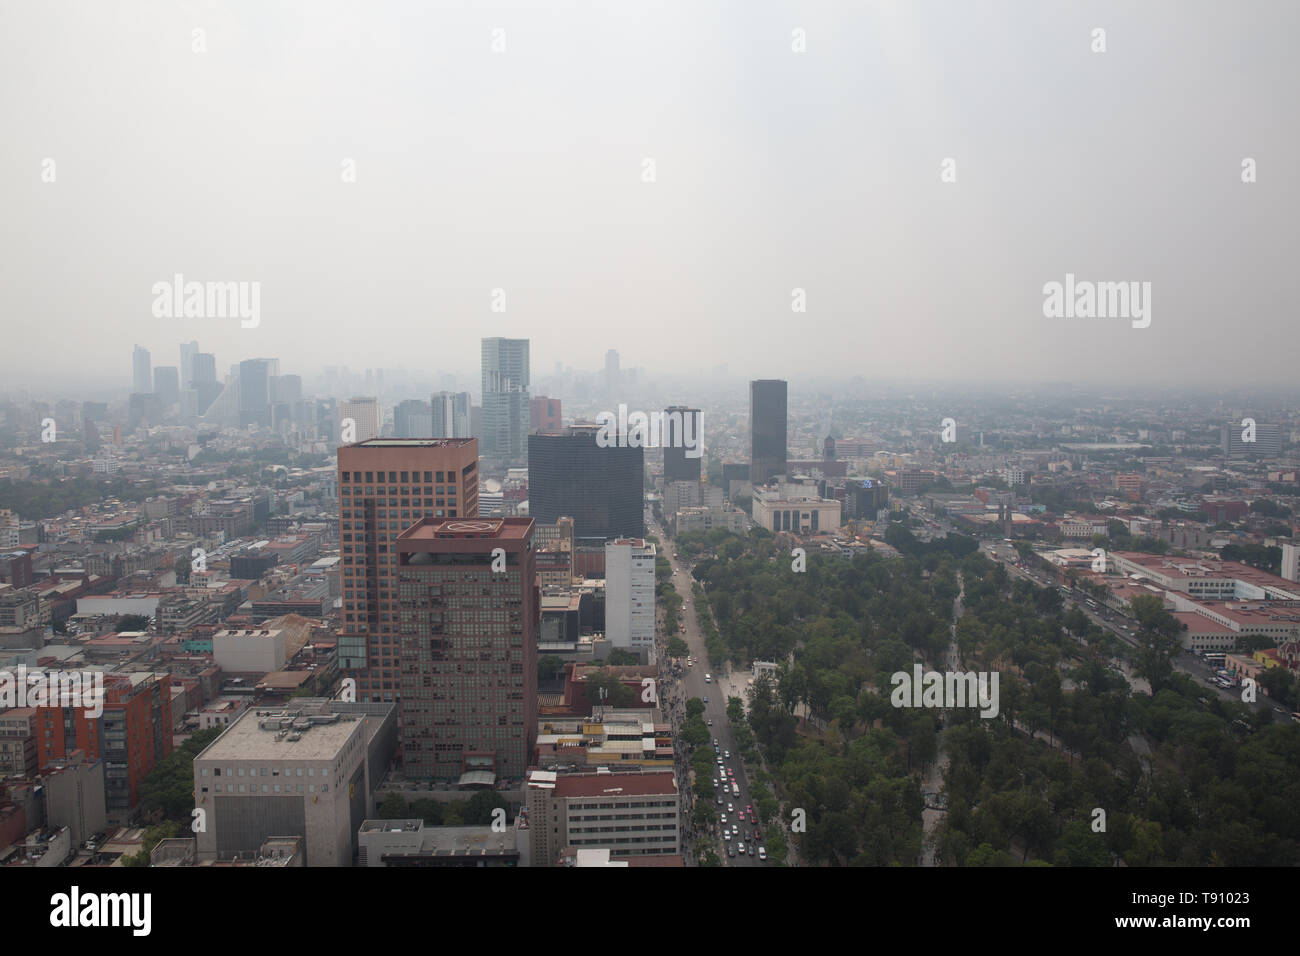 A haze of hazardous smoke covers Mexico City, Mexico on May 15, 2019. A series of wildfires on the city and its outskirts have combined with stagnant weather conditions to cloak the metropolitan area of more than 22 million people in a gray cloud of air pollution. The Environmental Commission of the Megalopolis issued an Extraordinary Environmental Contingency for the Mexico City metropolitan area after measuring extremely high levels of PM2.5 — fine particulate matter, on Tuesday. Mexico City's government has advised people to stay indoors, cancelled schools and restricted traffic due to air  Stock Photo